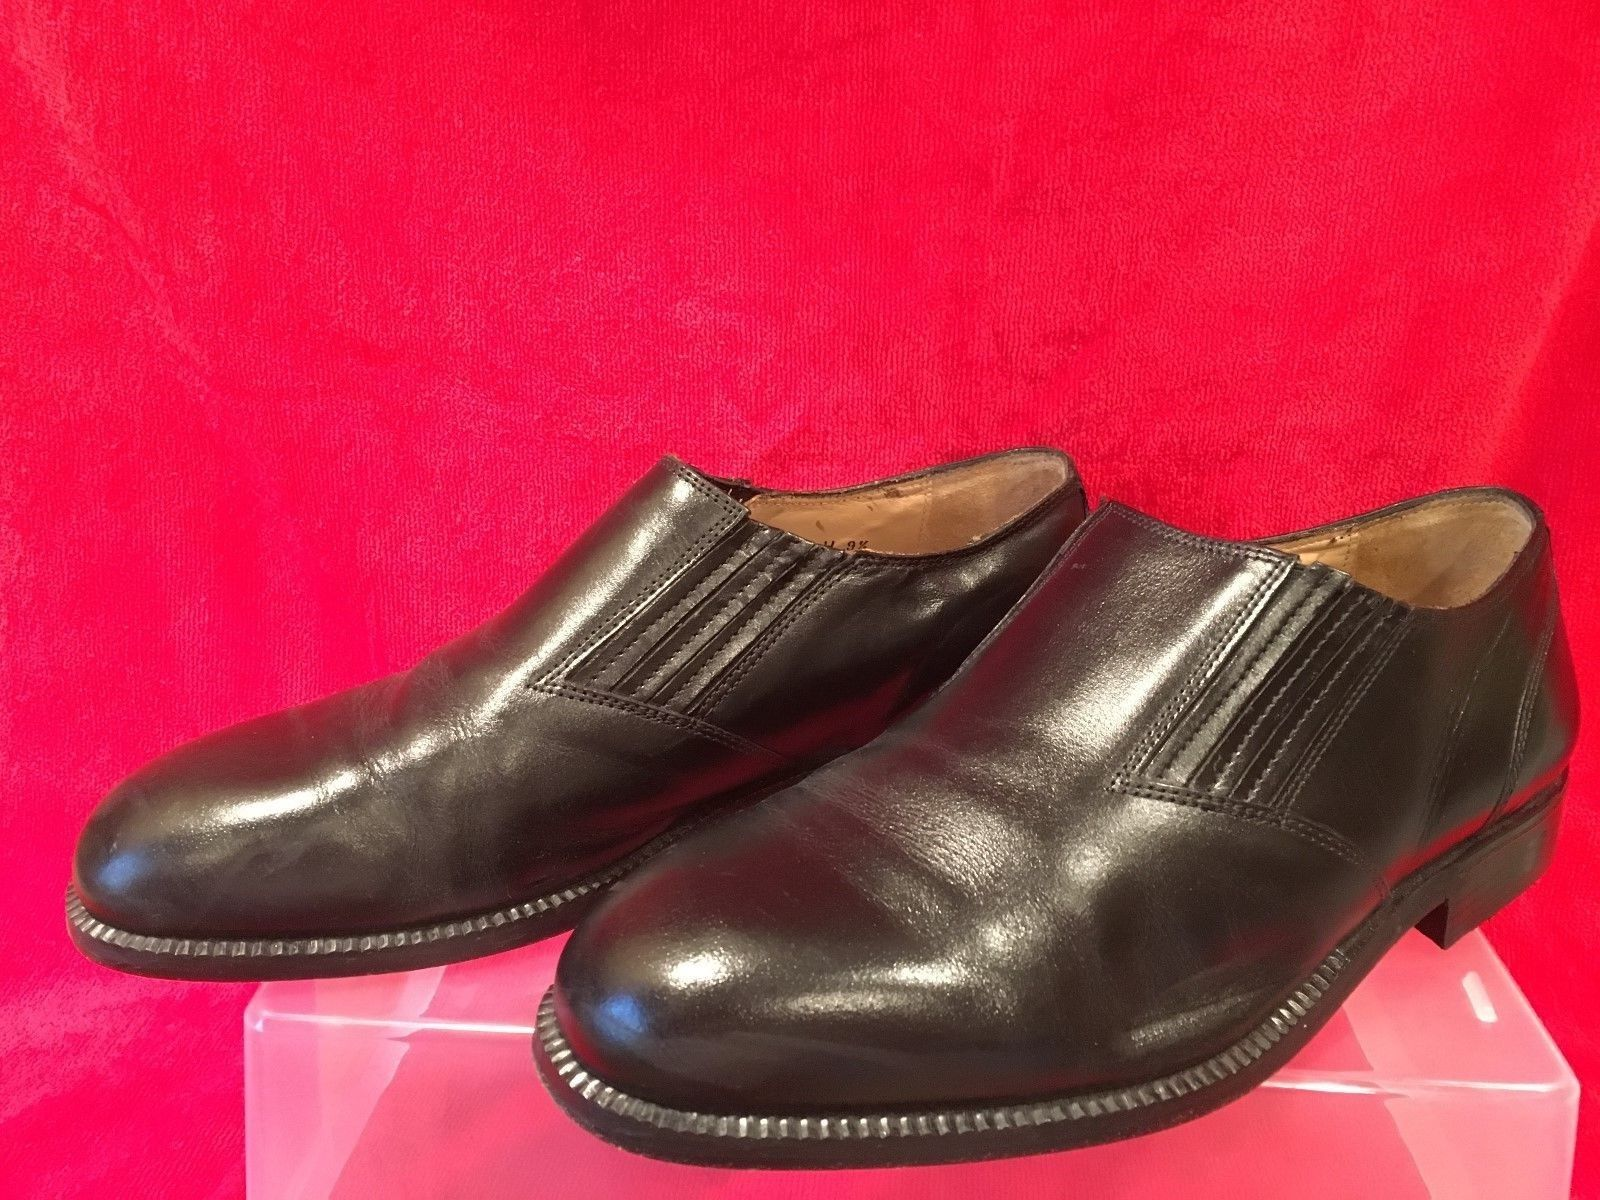 MEN'S STANLEY DRESS BLACKER COUTURE BLACK LEATHER DRESS STANLEY SLIP-ON SHOES SZ 9.5 W  ITALY 390249